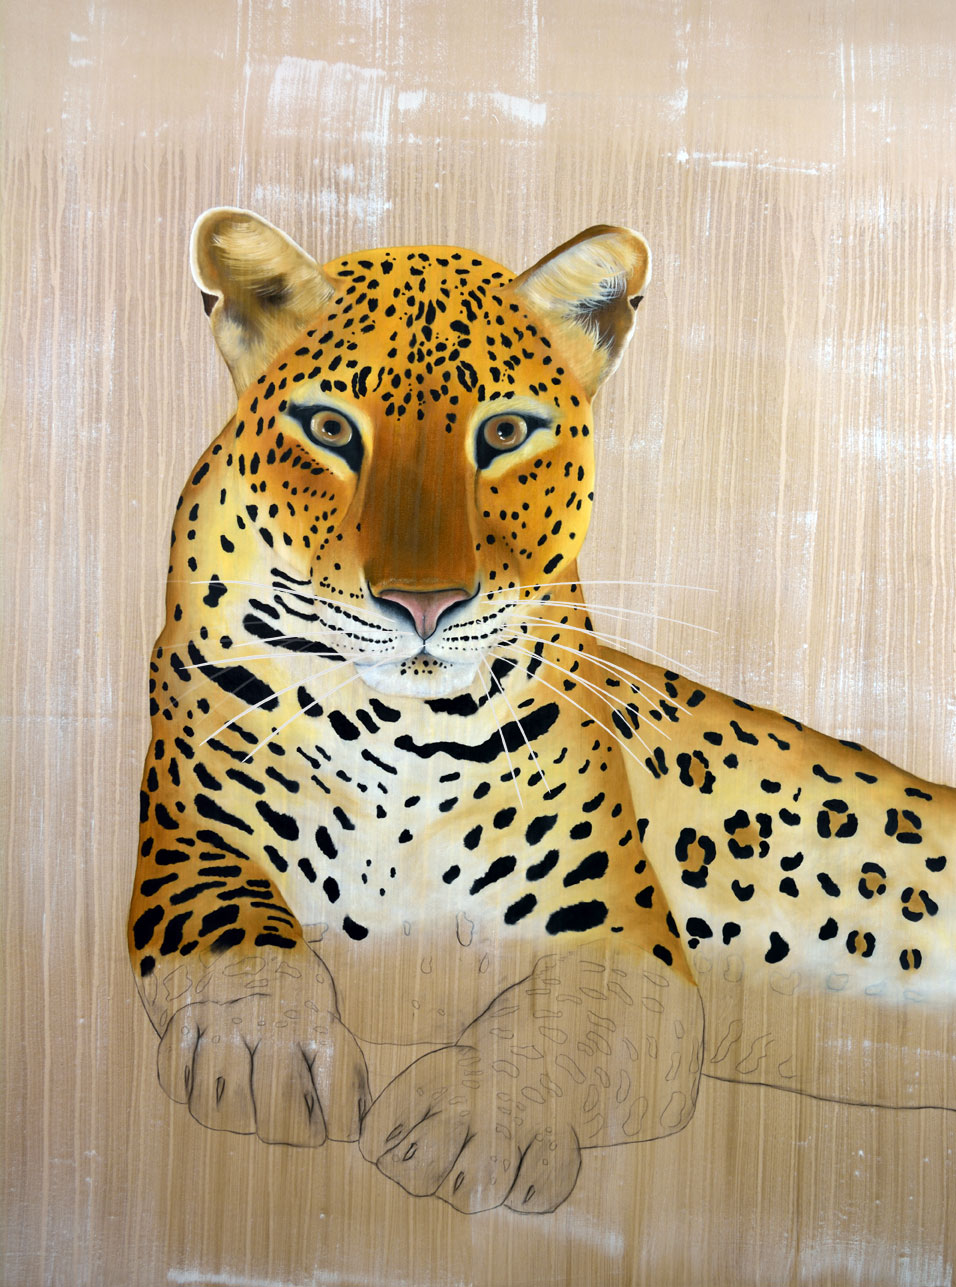 PANTHERA-PARDUS-PANTHERA african-leopard-atlas-delete-extinction-protégé-disparition Thierry Bisch painter animals painting art decoration hotel design interior luxury nature biodiversity conservation